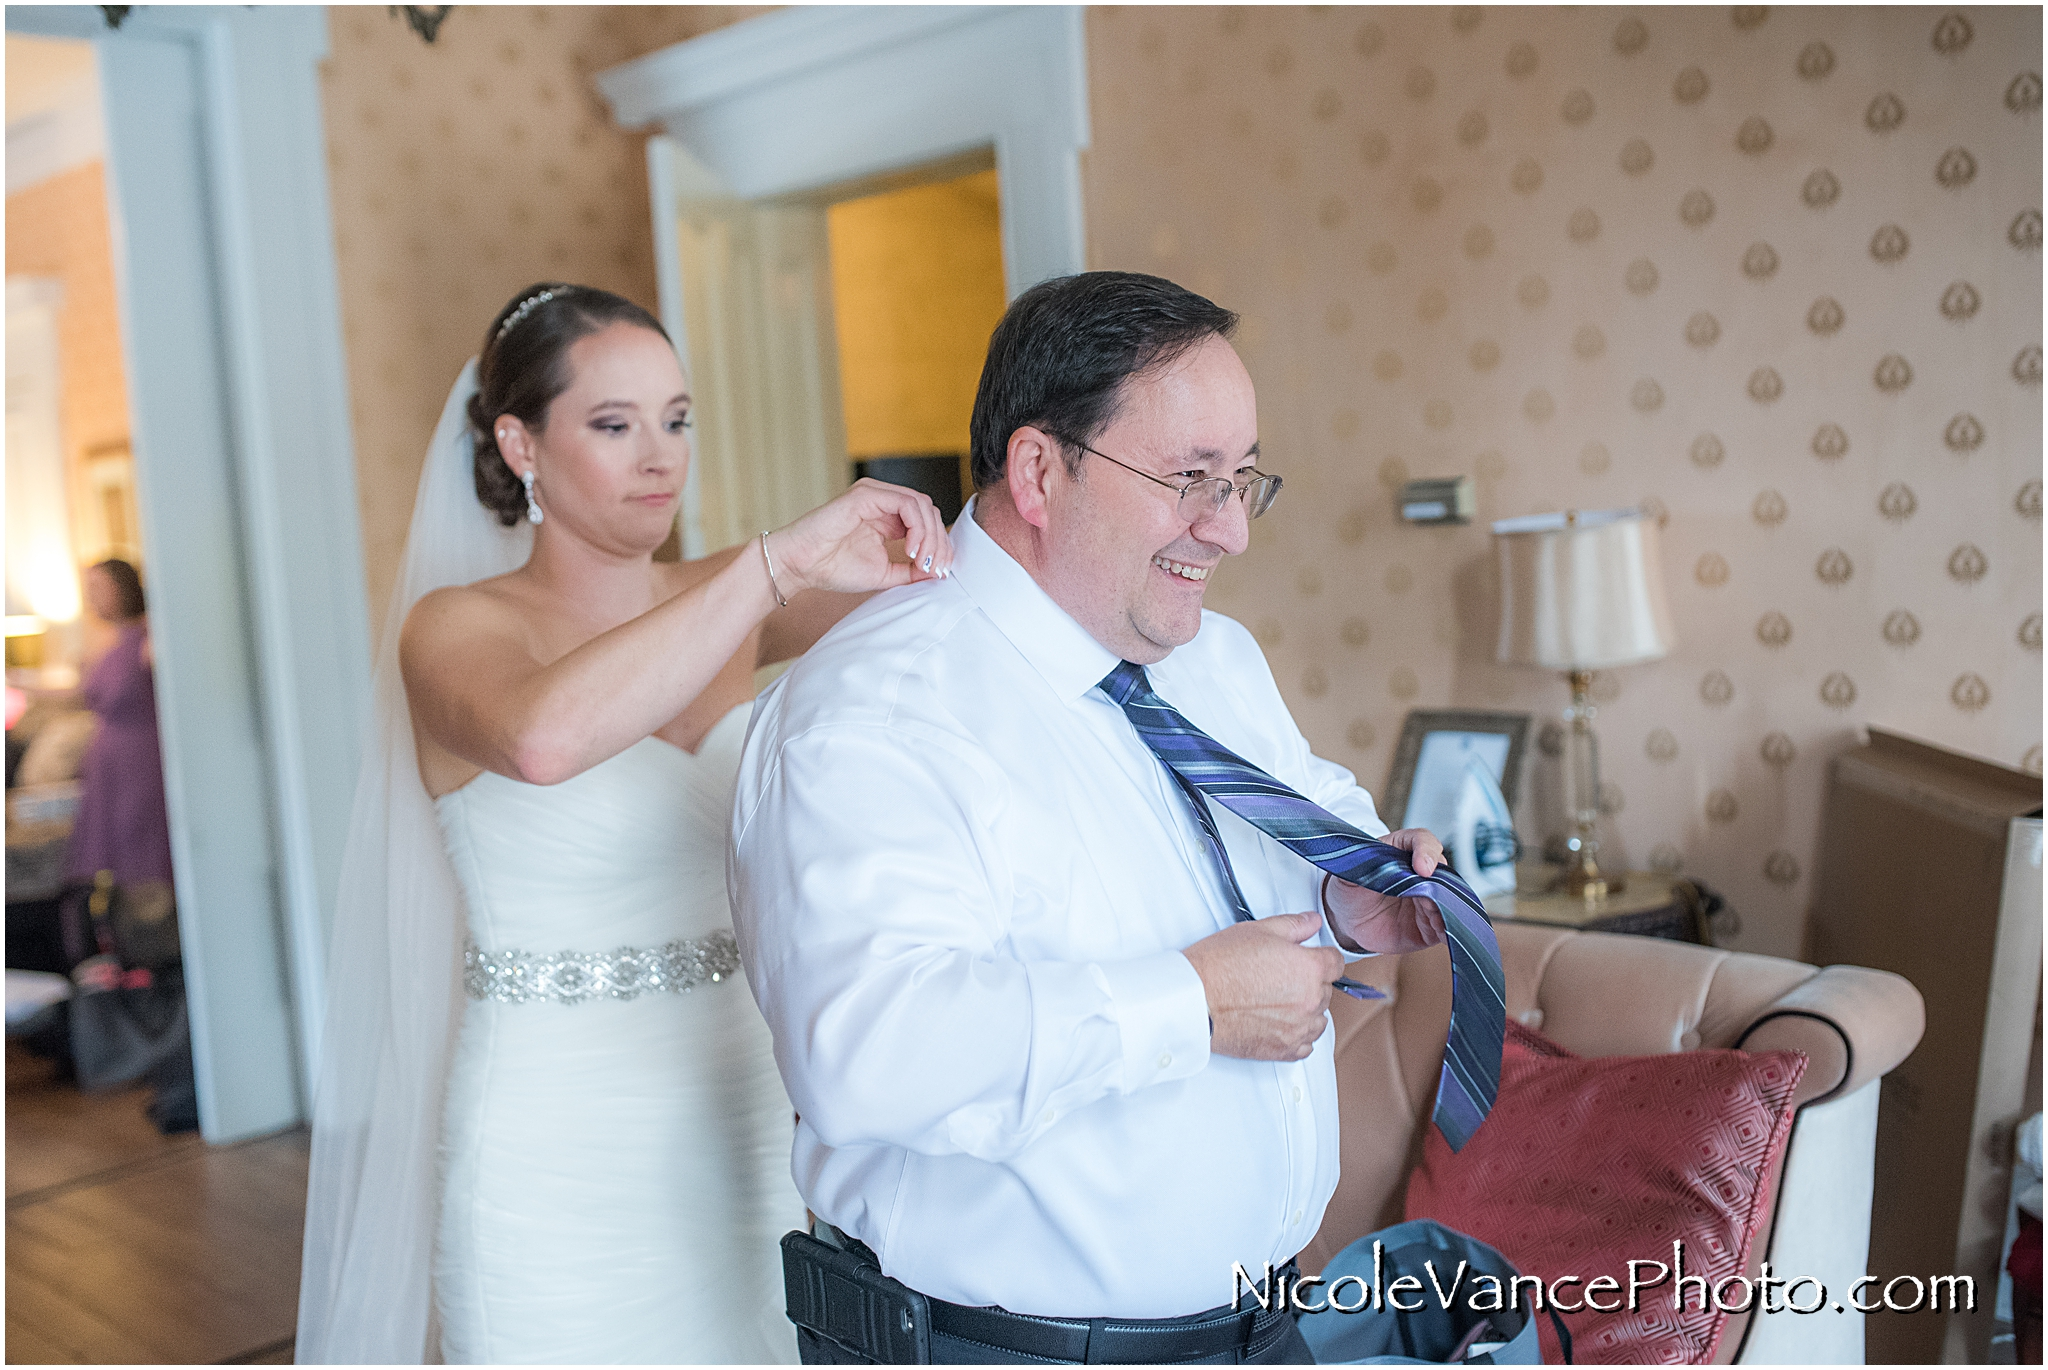 The bride helps her dad with his tie... she is waiting for his to see the special embroidery underneath the tie she purchased for him as a gift.